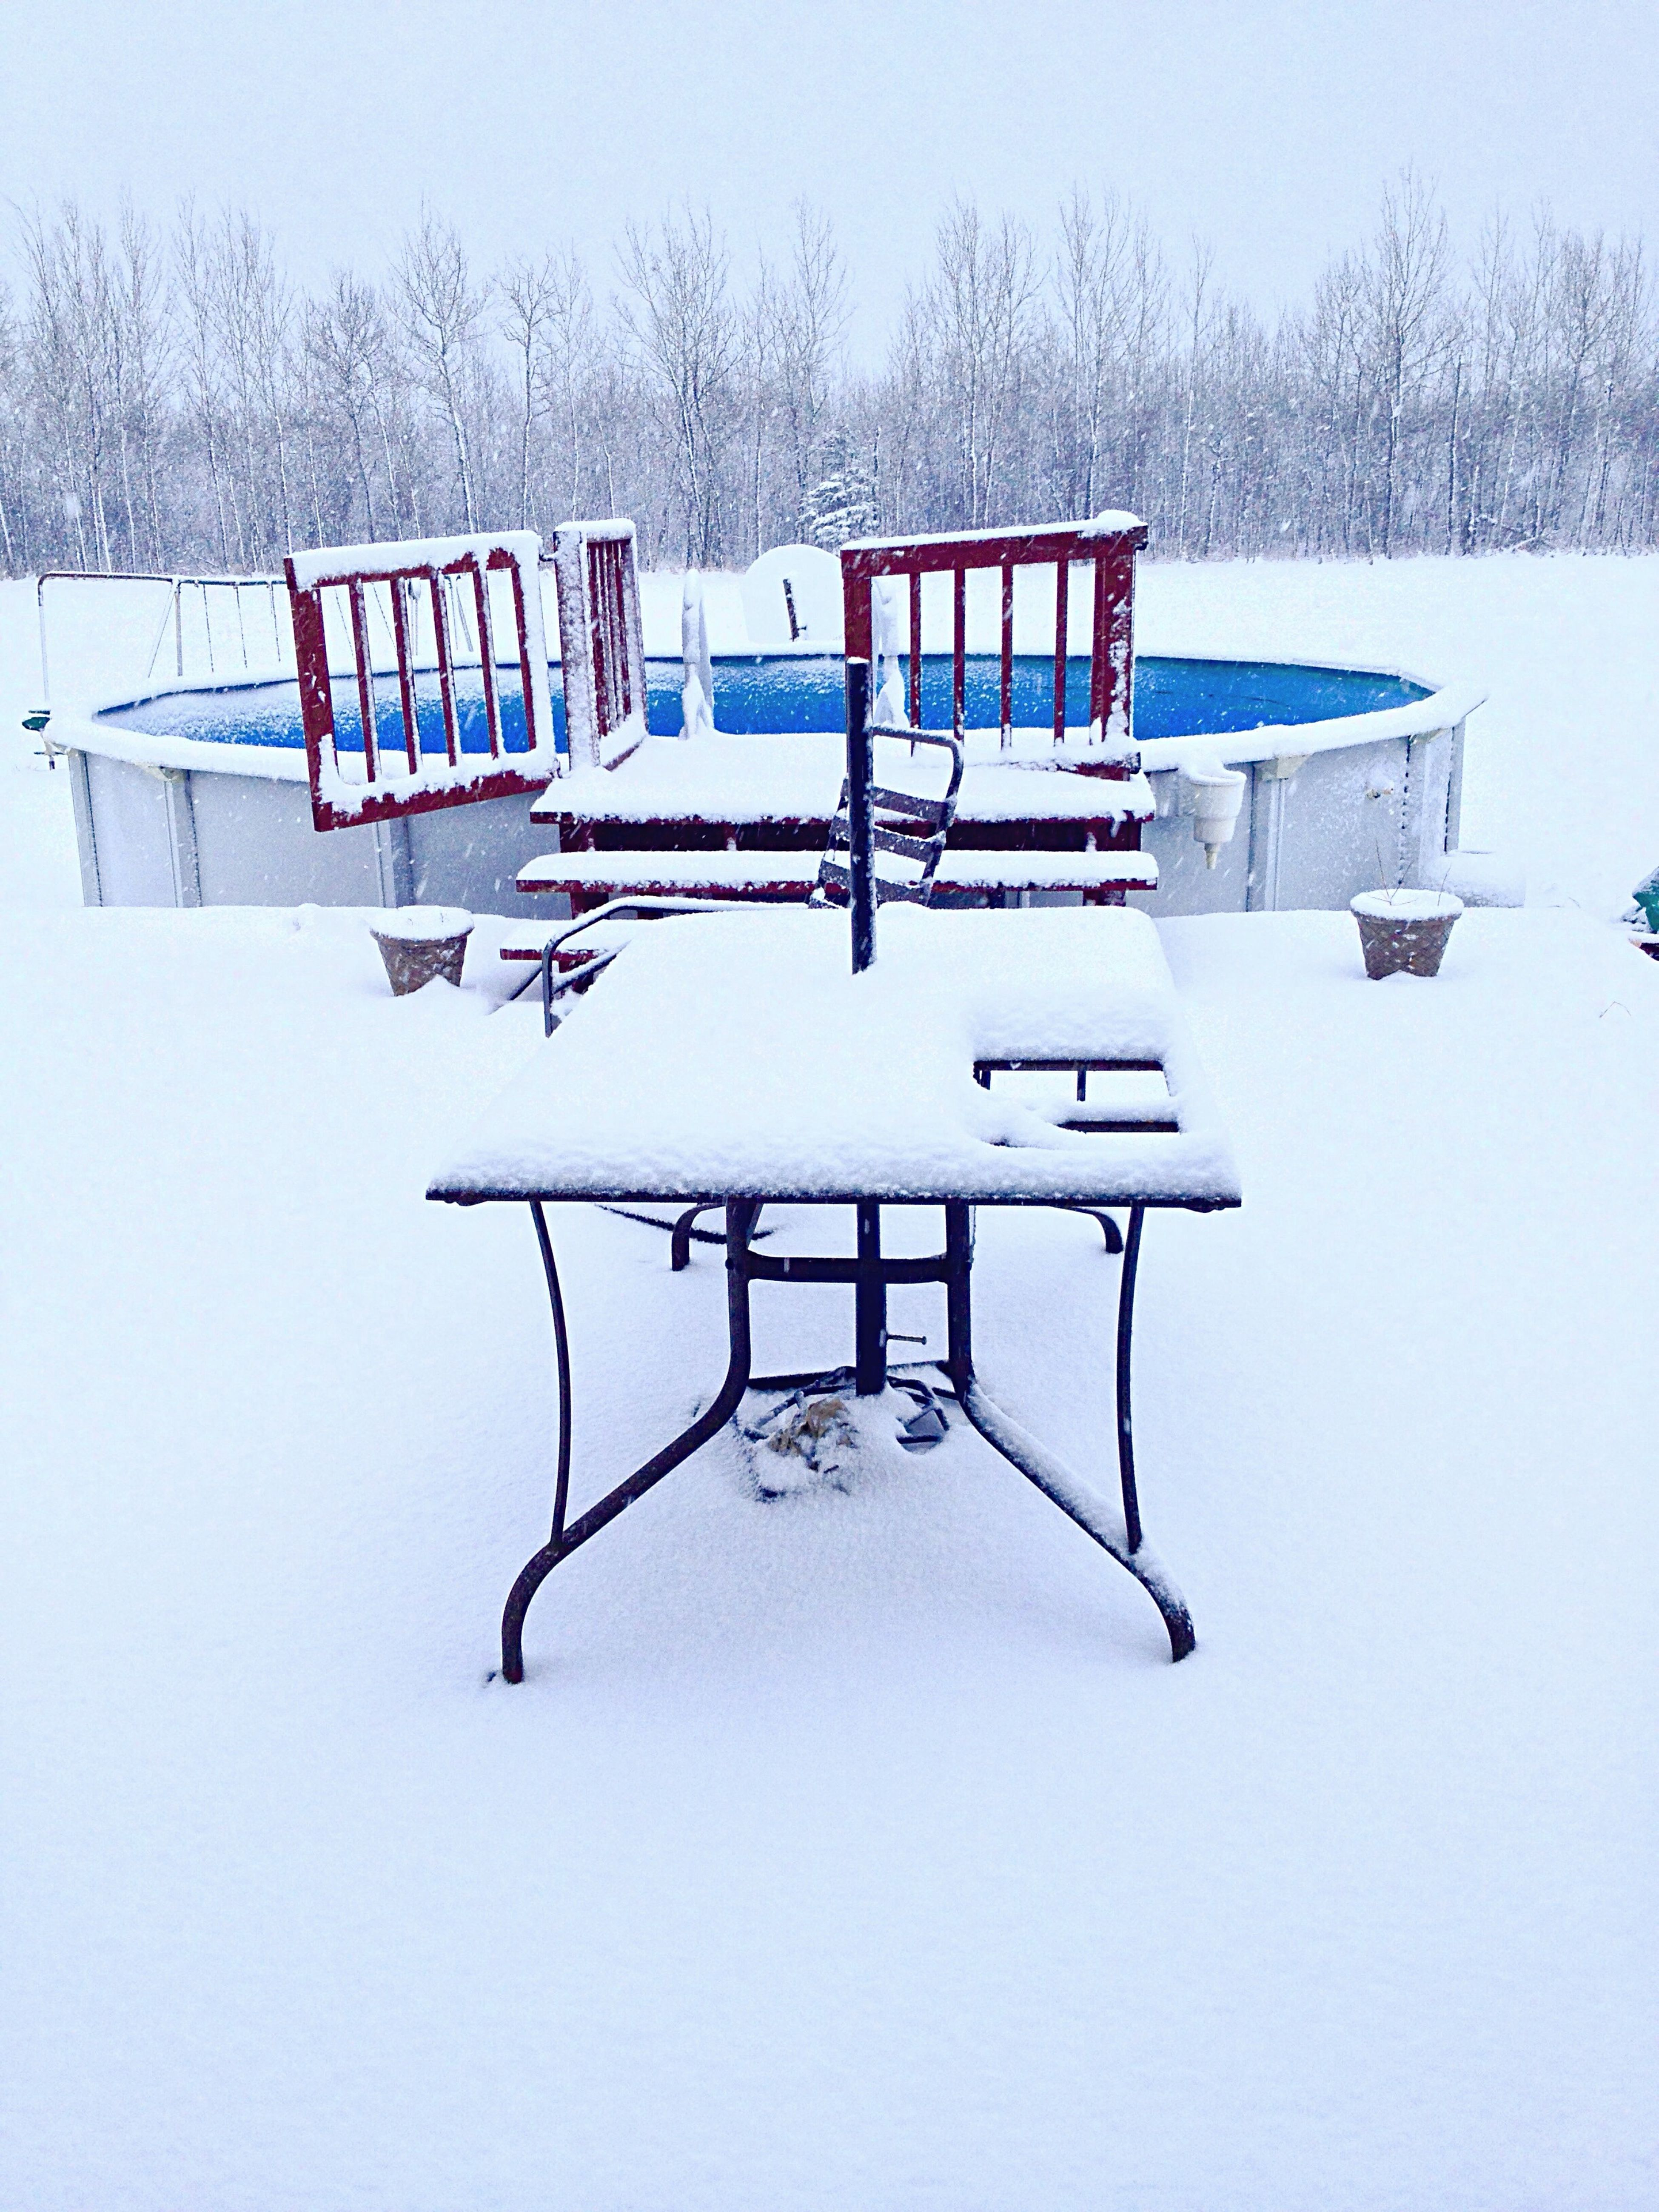 Just dreaming of warmth 🏖 Hurryupspring Snowy Country Swimmingpool Backdeck Myview Nomorewinterplease Iphone4